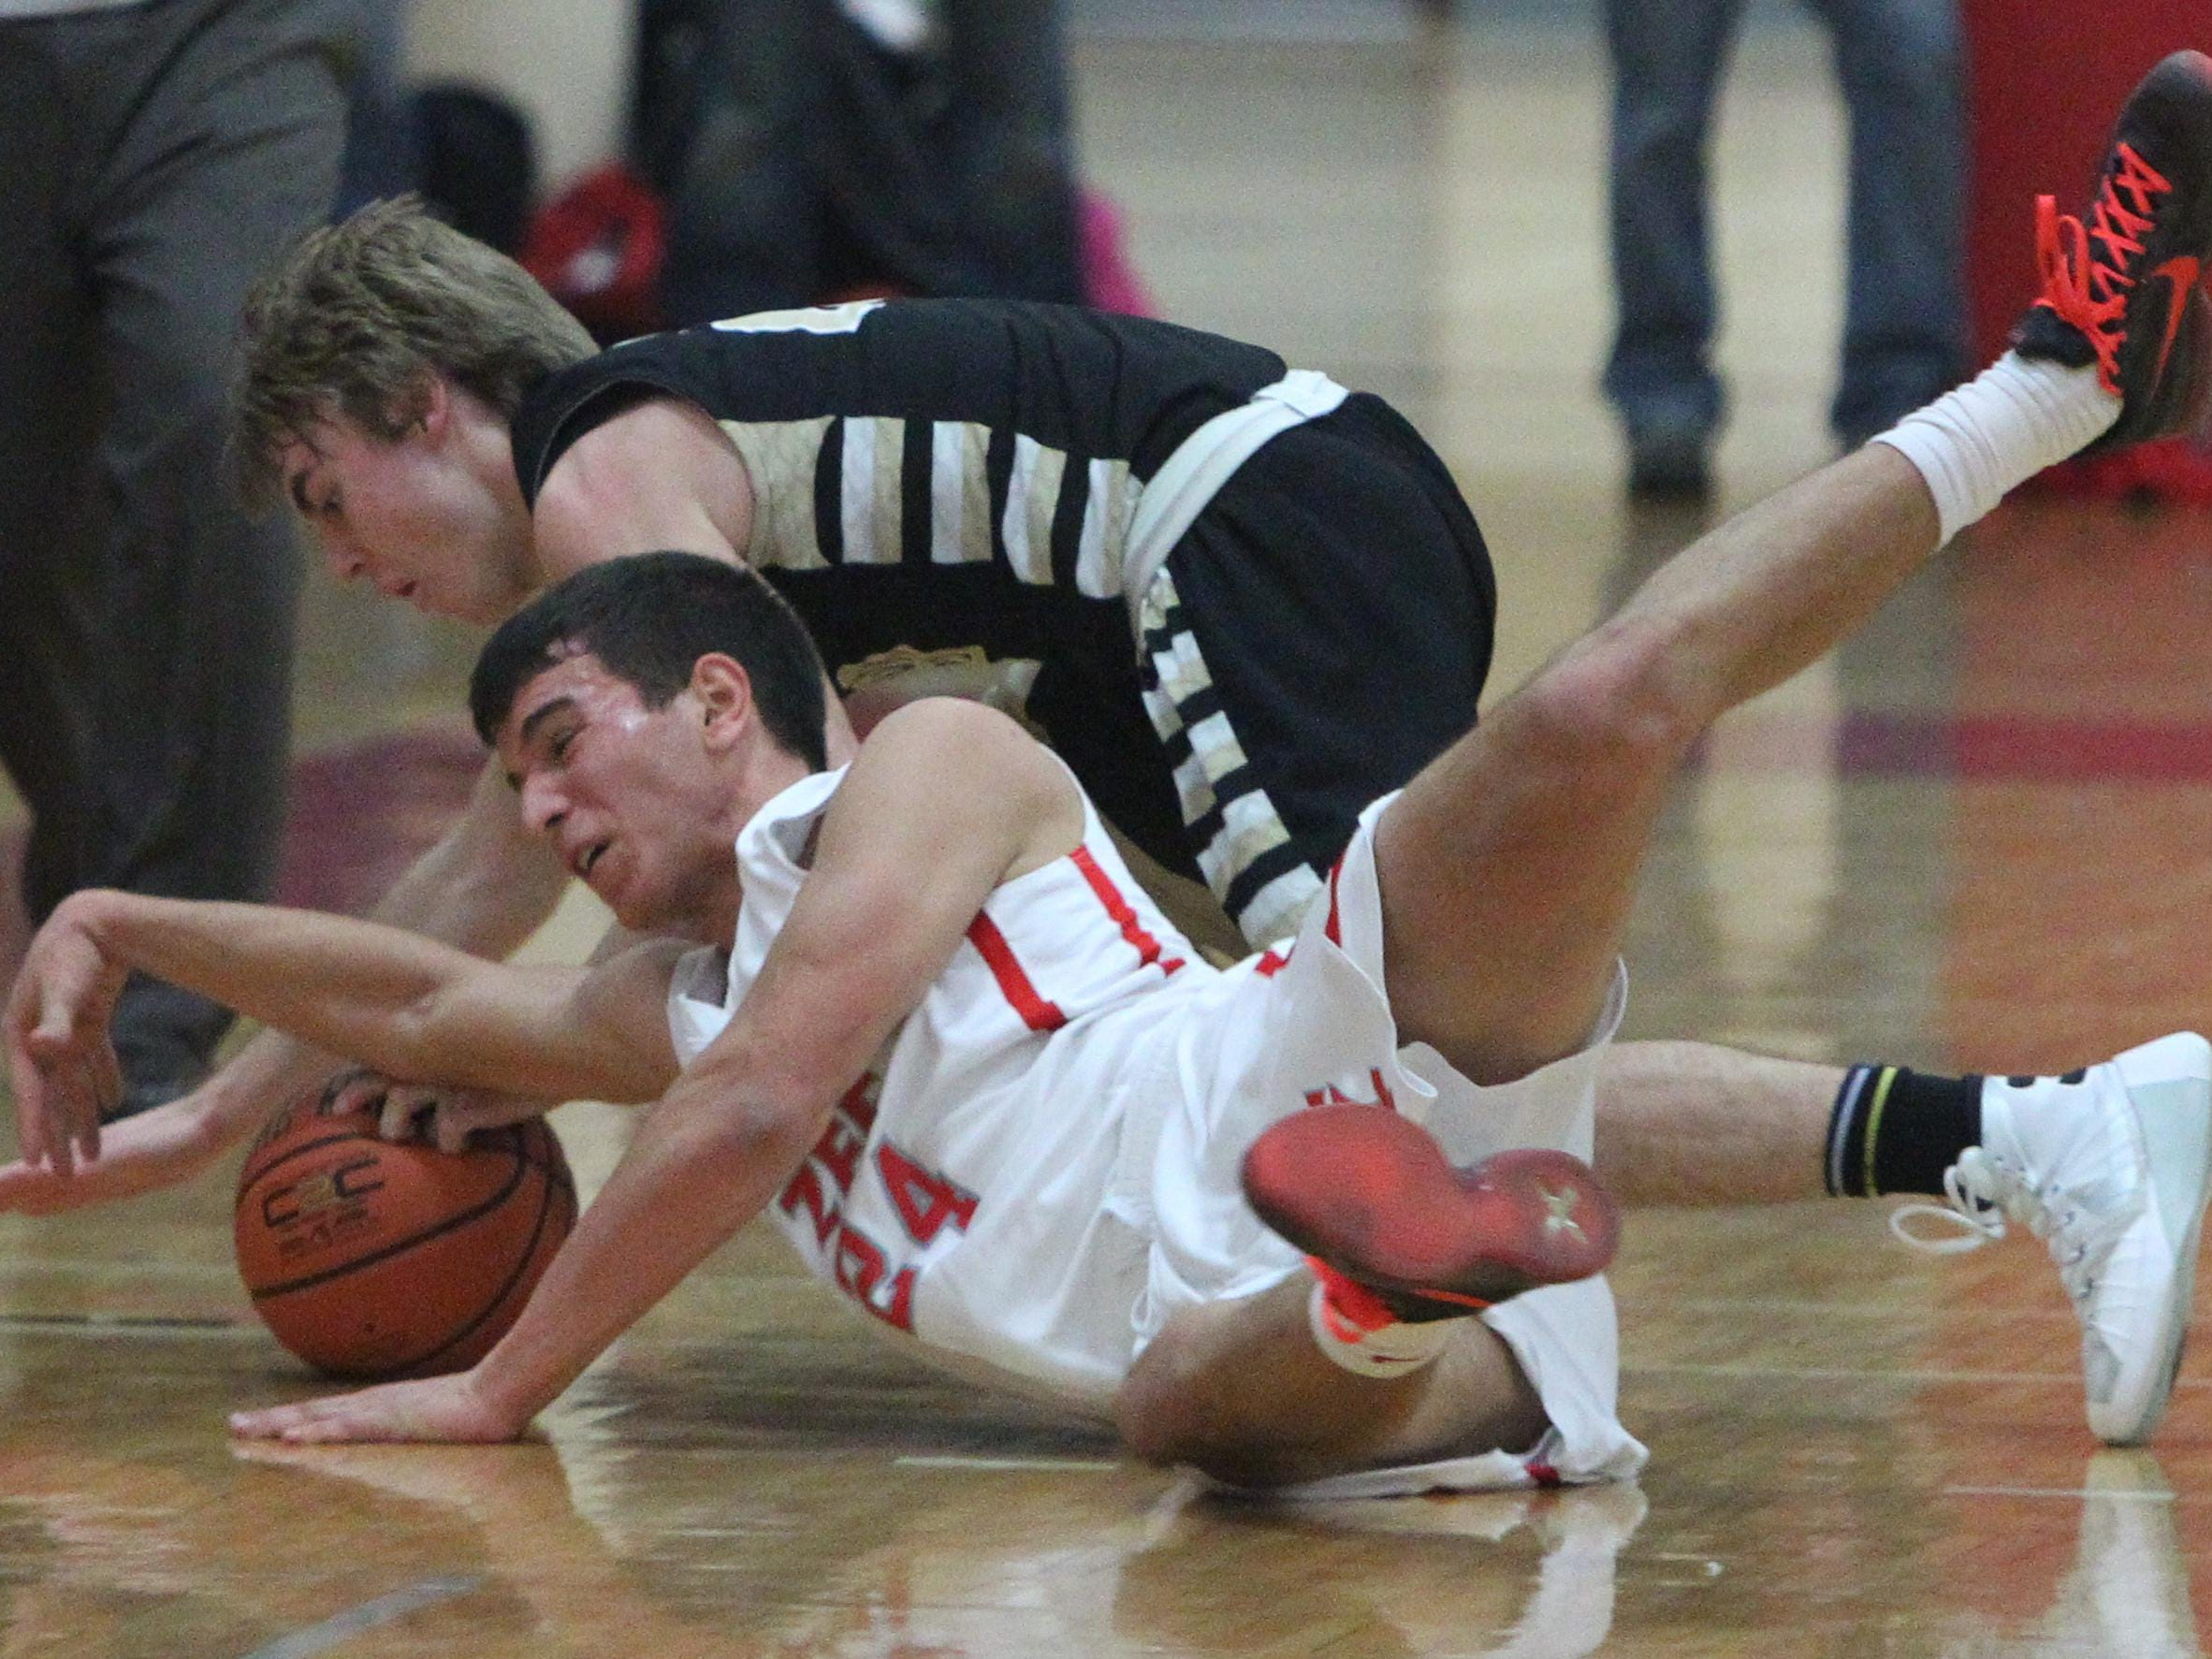 Tappan Zee's Rob McWilliams fights for a loose ball with Nanuet's Terrence Rogers during their game at Tappan Zee Wednesday. Tappan Zee won 59-46.